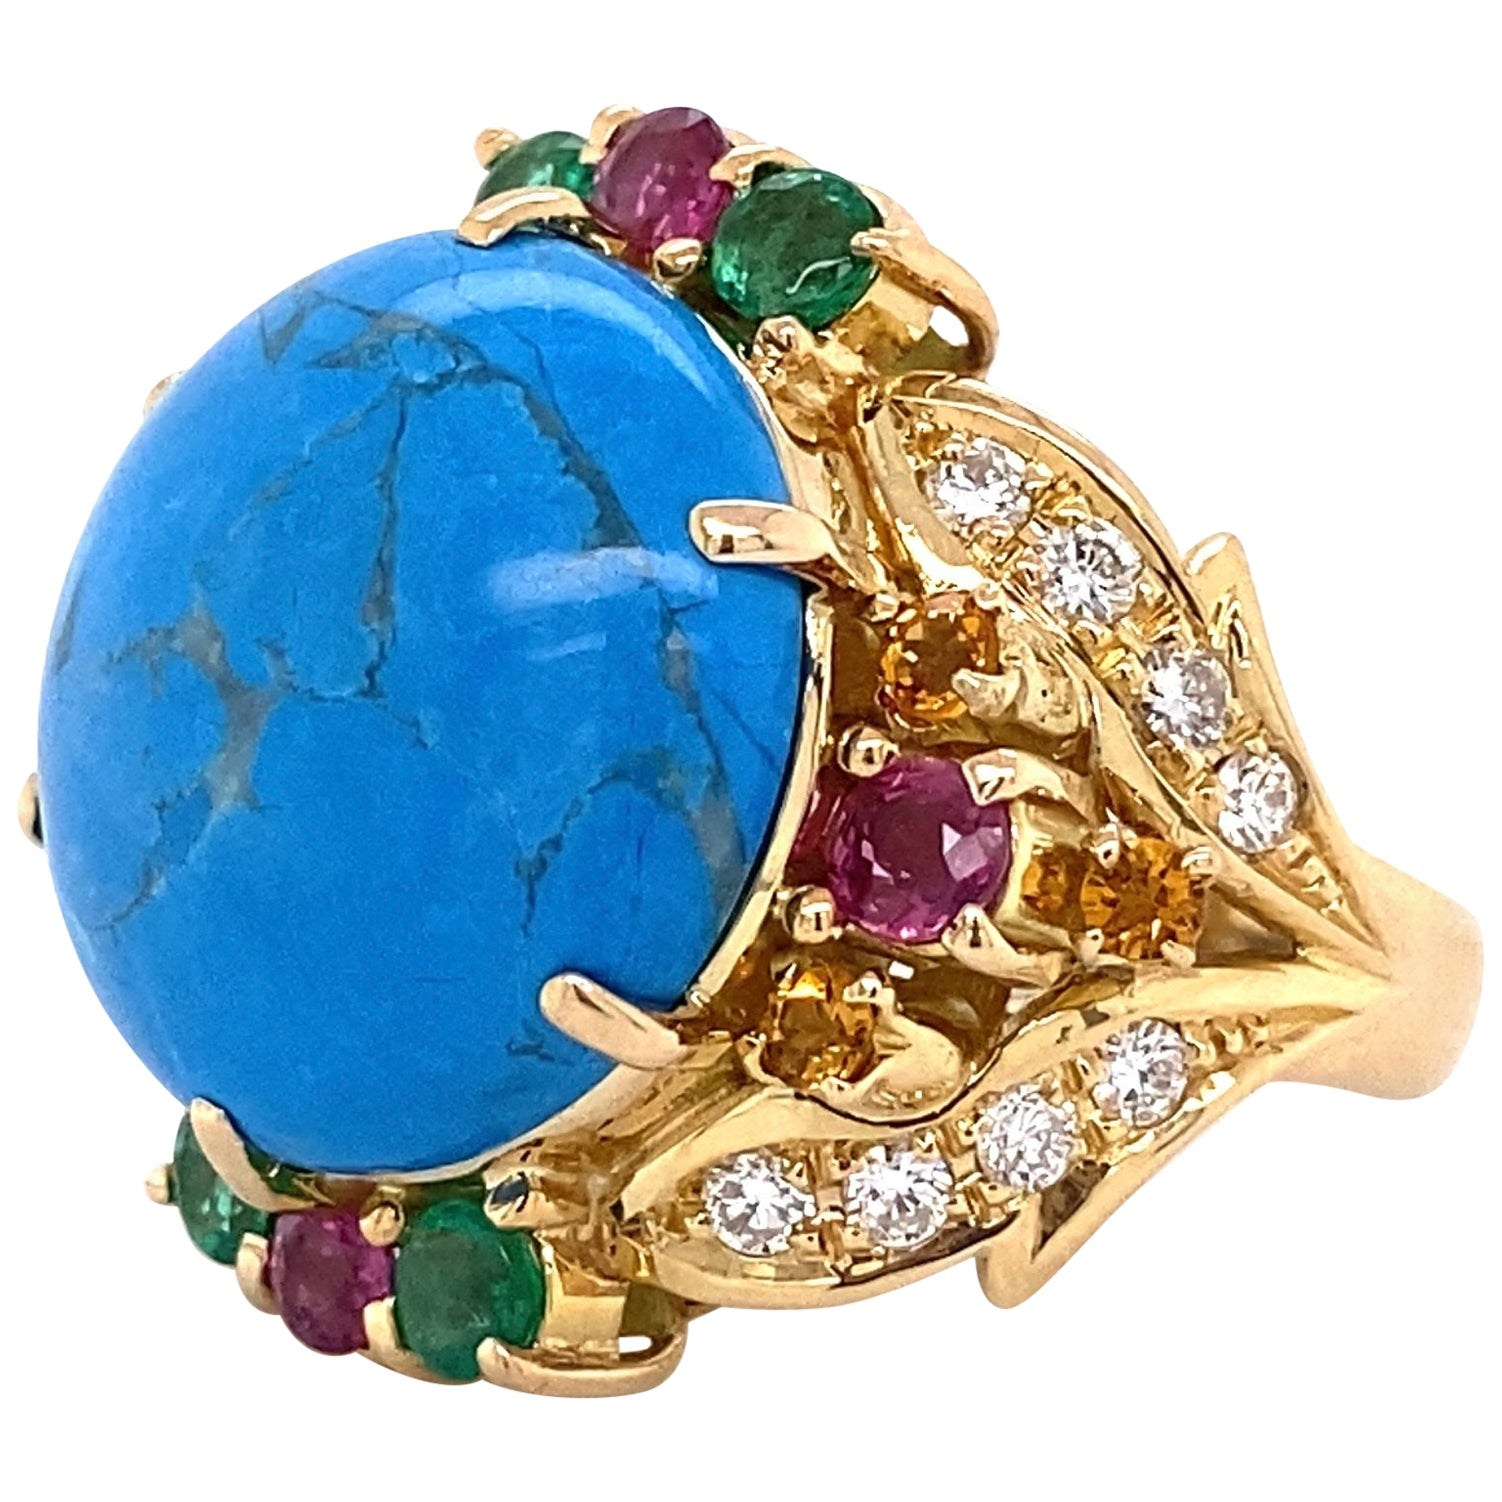 5.5 Carat Turquoise Diamond Emerald Ruby Gold Cocktail Ring Estate Fine Jewelry